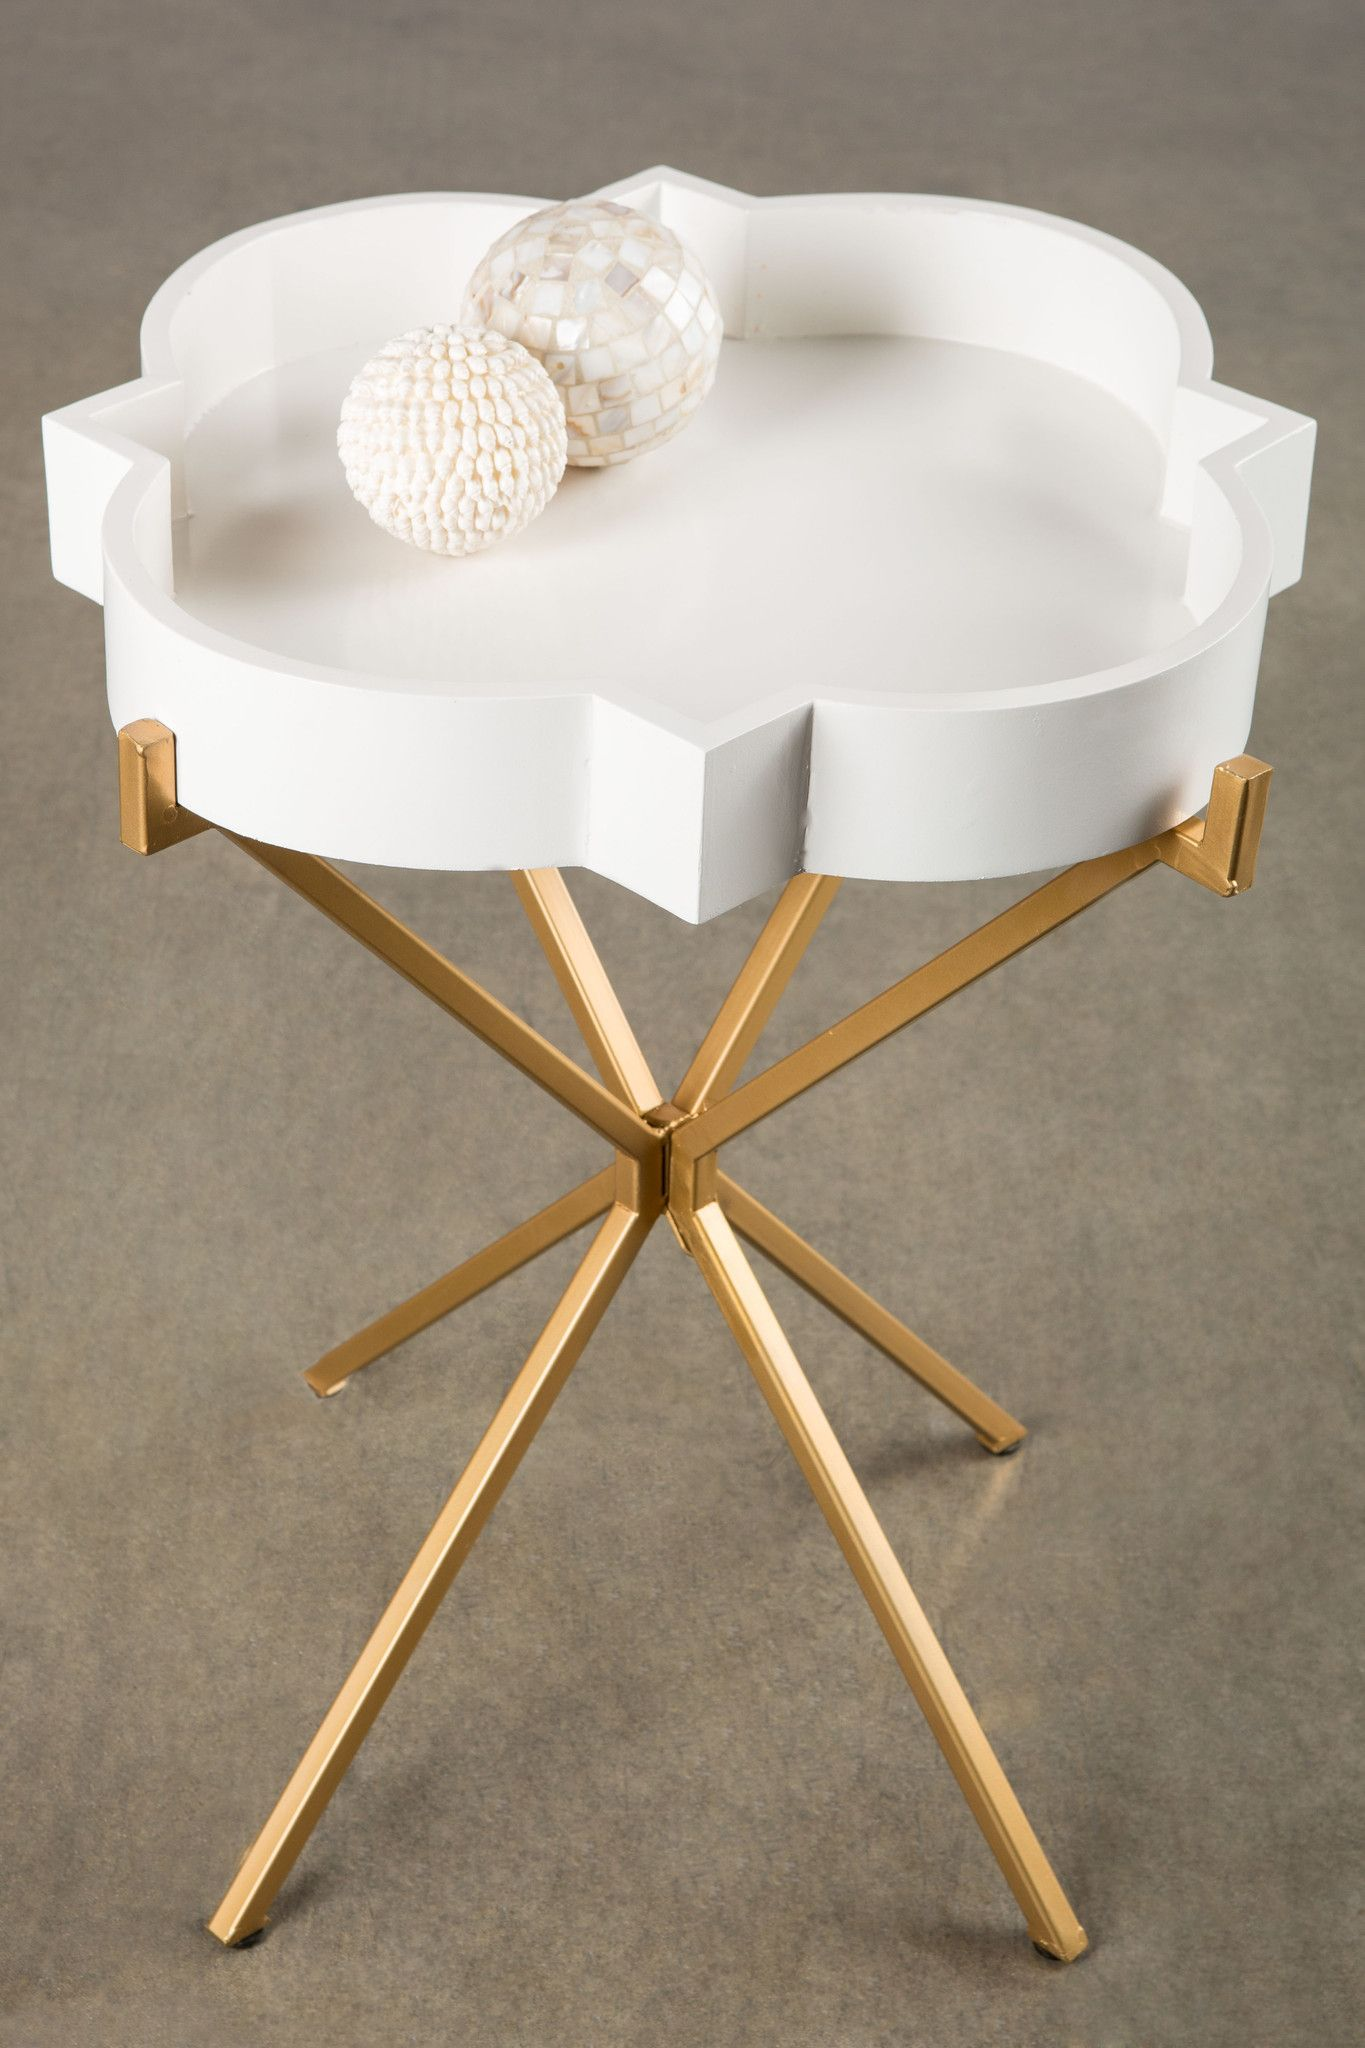 Statements By J Josylyn Side Table Materials Wood And Metal Removable Tray